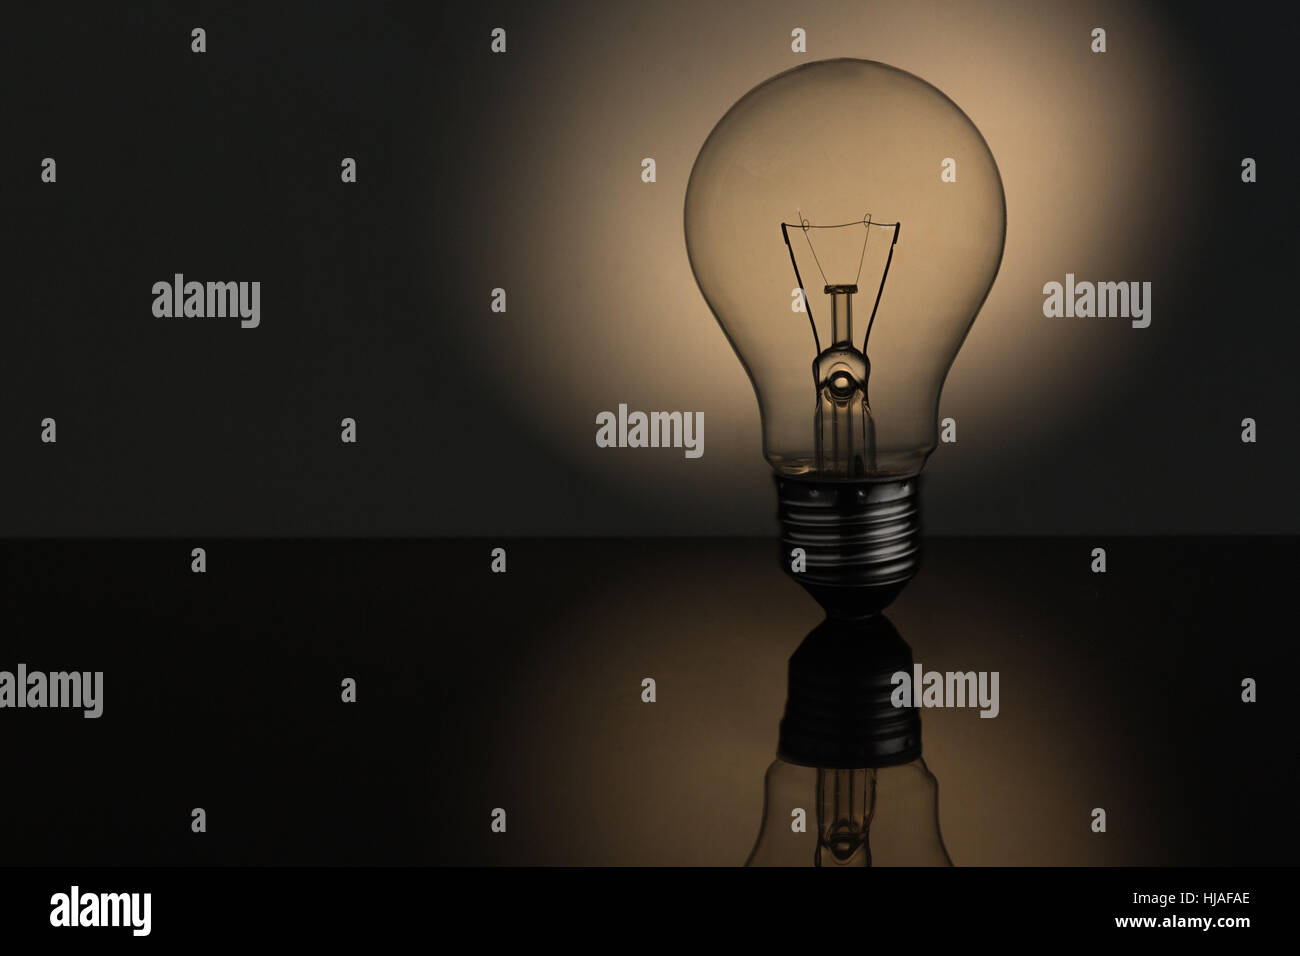 Filament light bulb with copy space in sepia tones - Stock Image